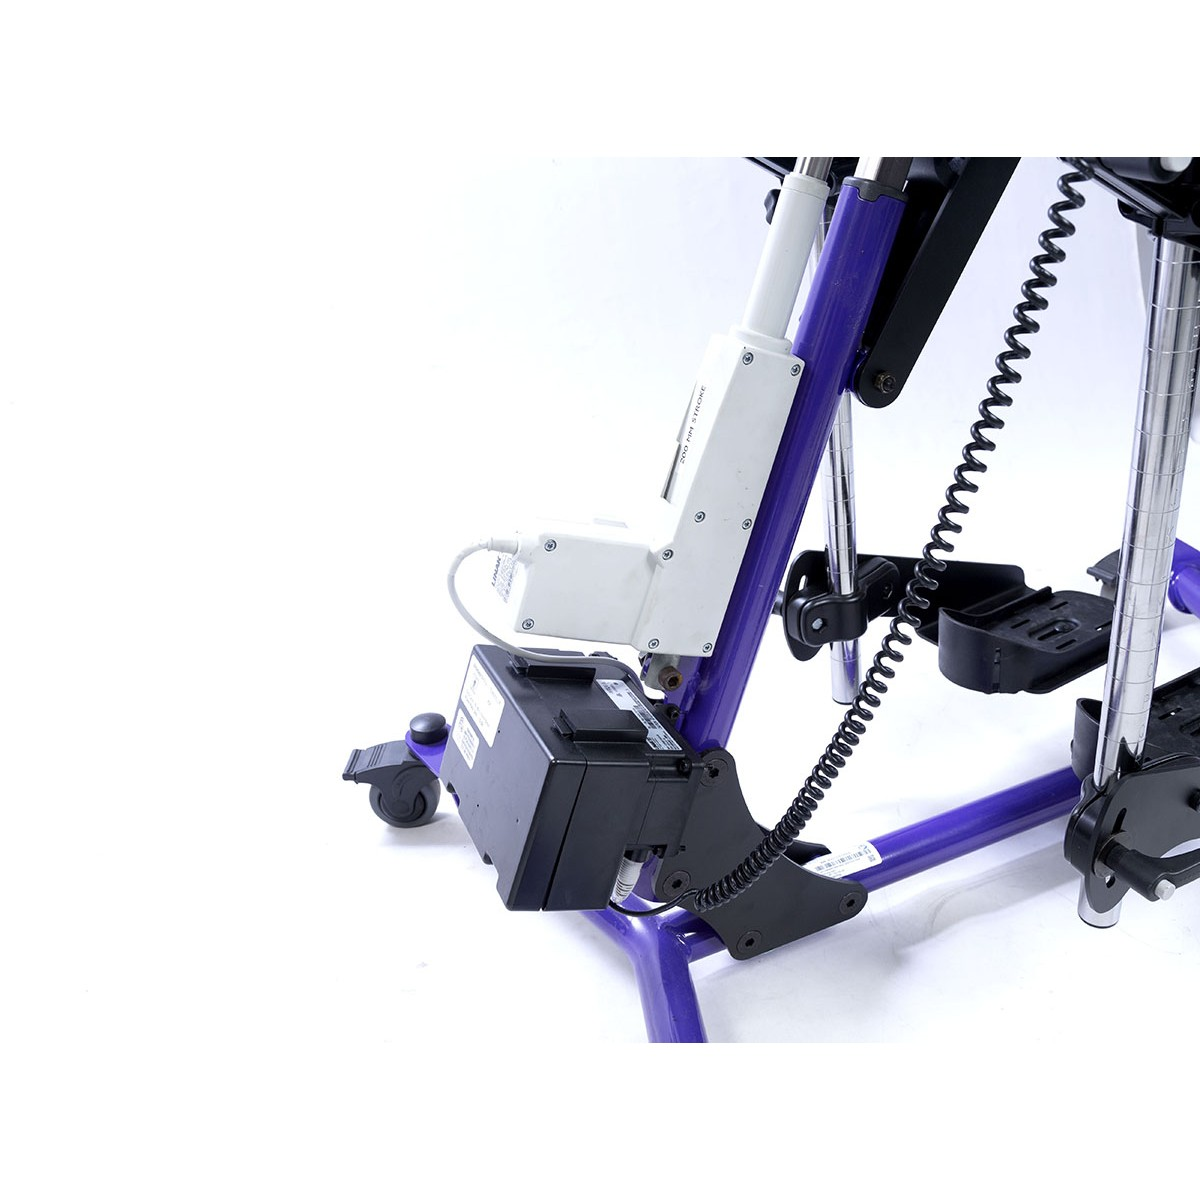 EasyStand Zing Supine TT Size 2 Pow'r Up Lift